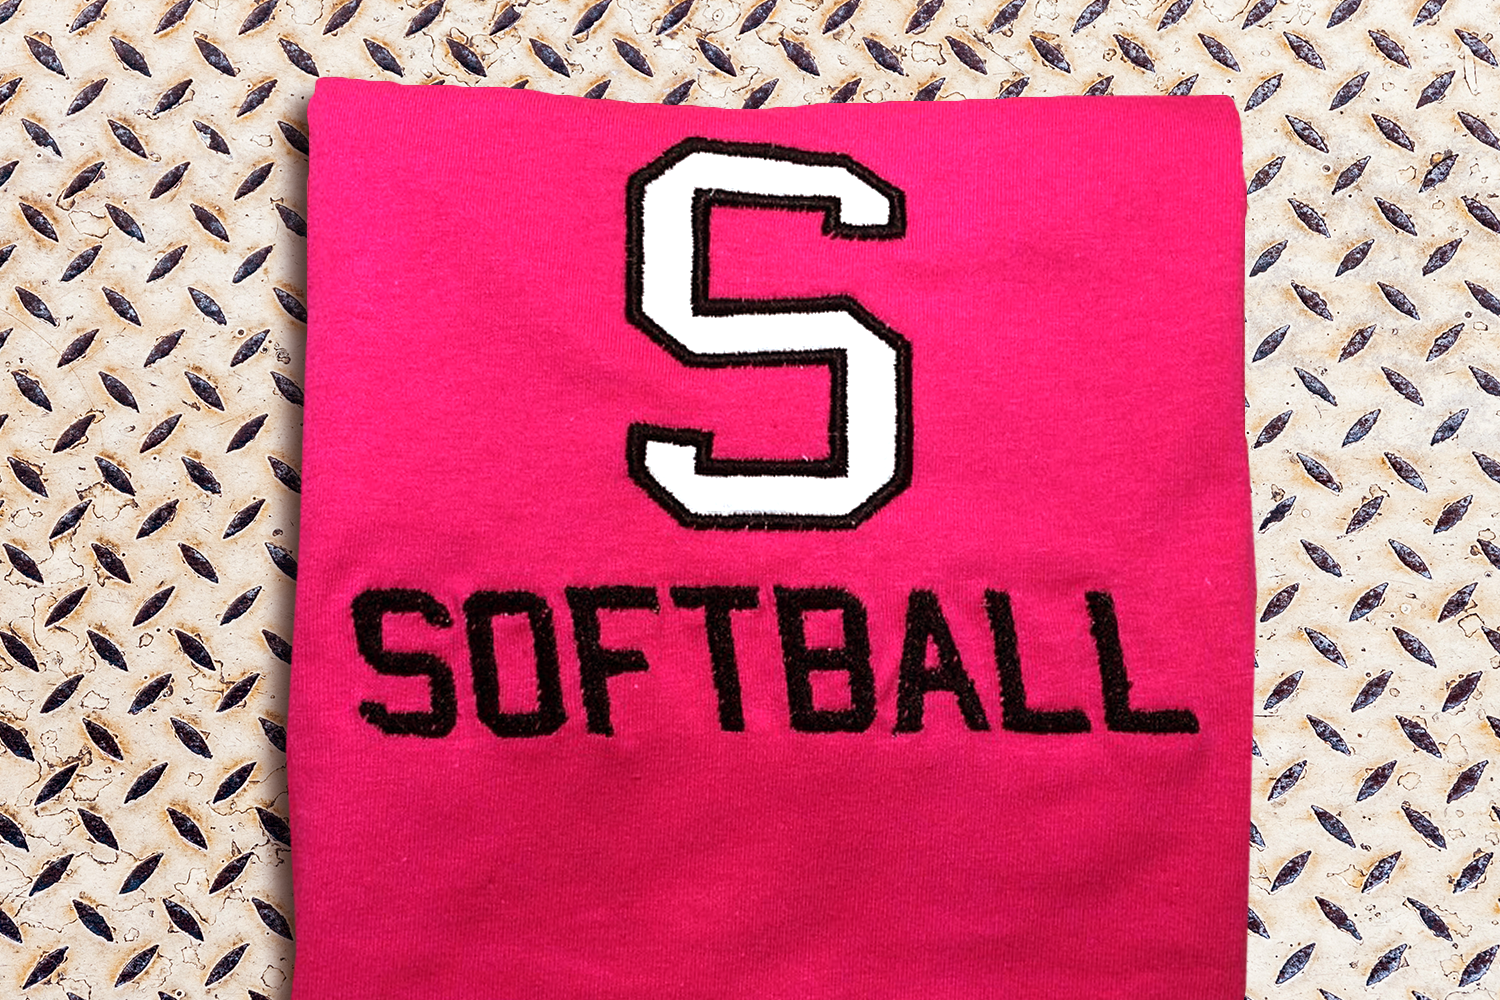 S for Softball Applique Embroidery Design example image 1